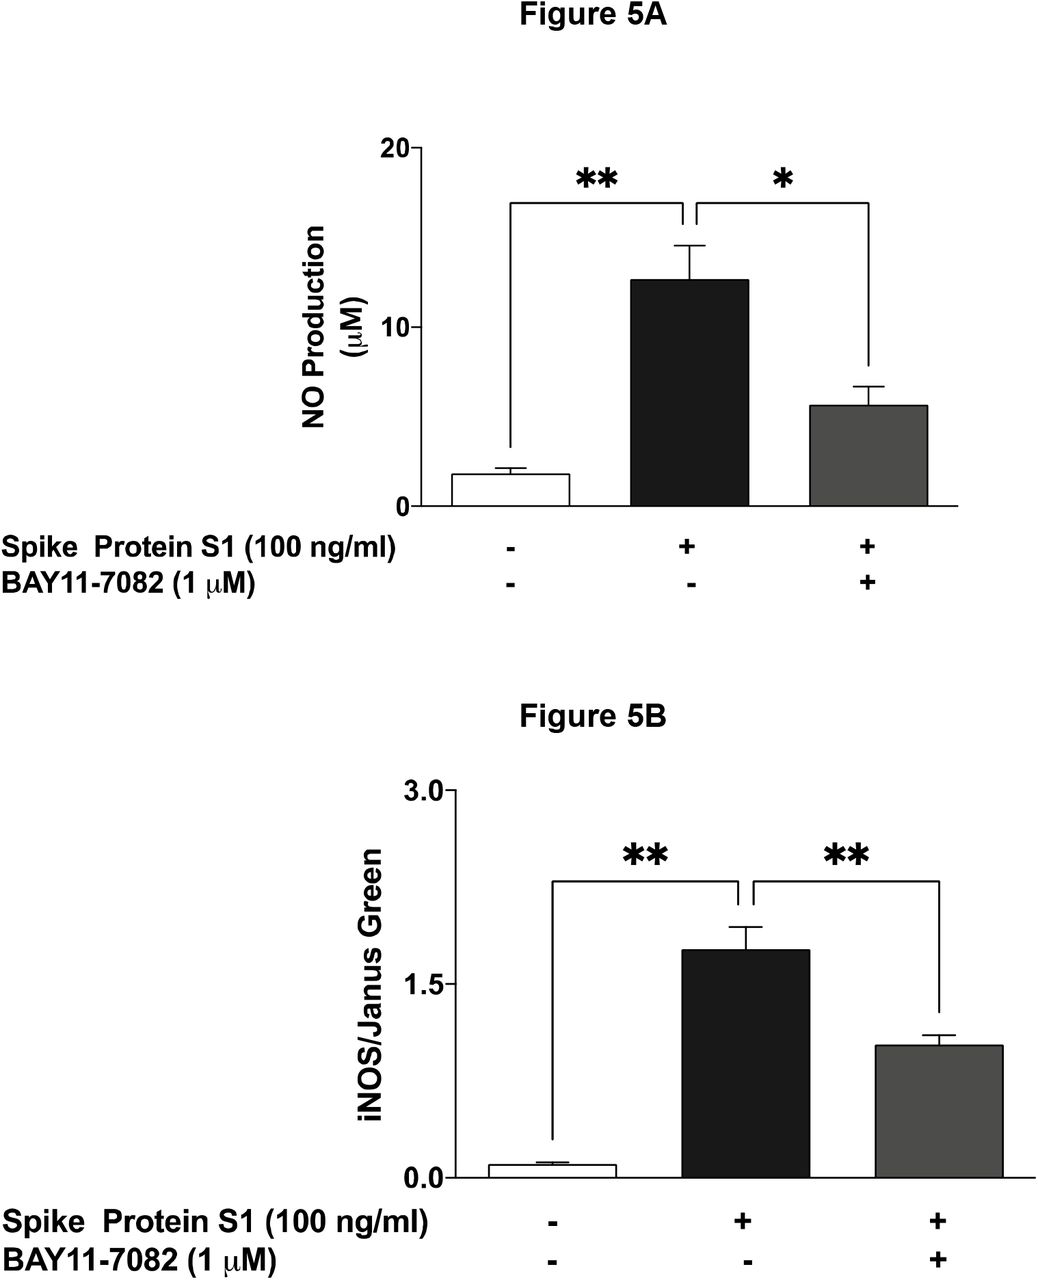 Pre-treatment with BAY11-7082 (1 µM) resulted in inhibition of SARS-CoV-2 spike S1 glycoprotein-induced increased production of NO (A), iNOS protein (B) in BV-2 microglia, following stimulation for 24 h. Culture supernatants were analysed using Griess assay, in-cell western (cytoblot) was used for iNOS detection. Data were analysed using One-way ANOVA followed by a post hoc Tukey's multiple comparison test. *p